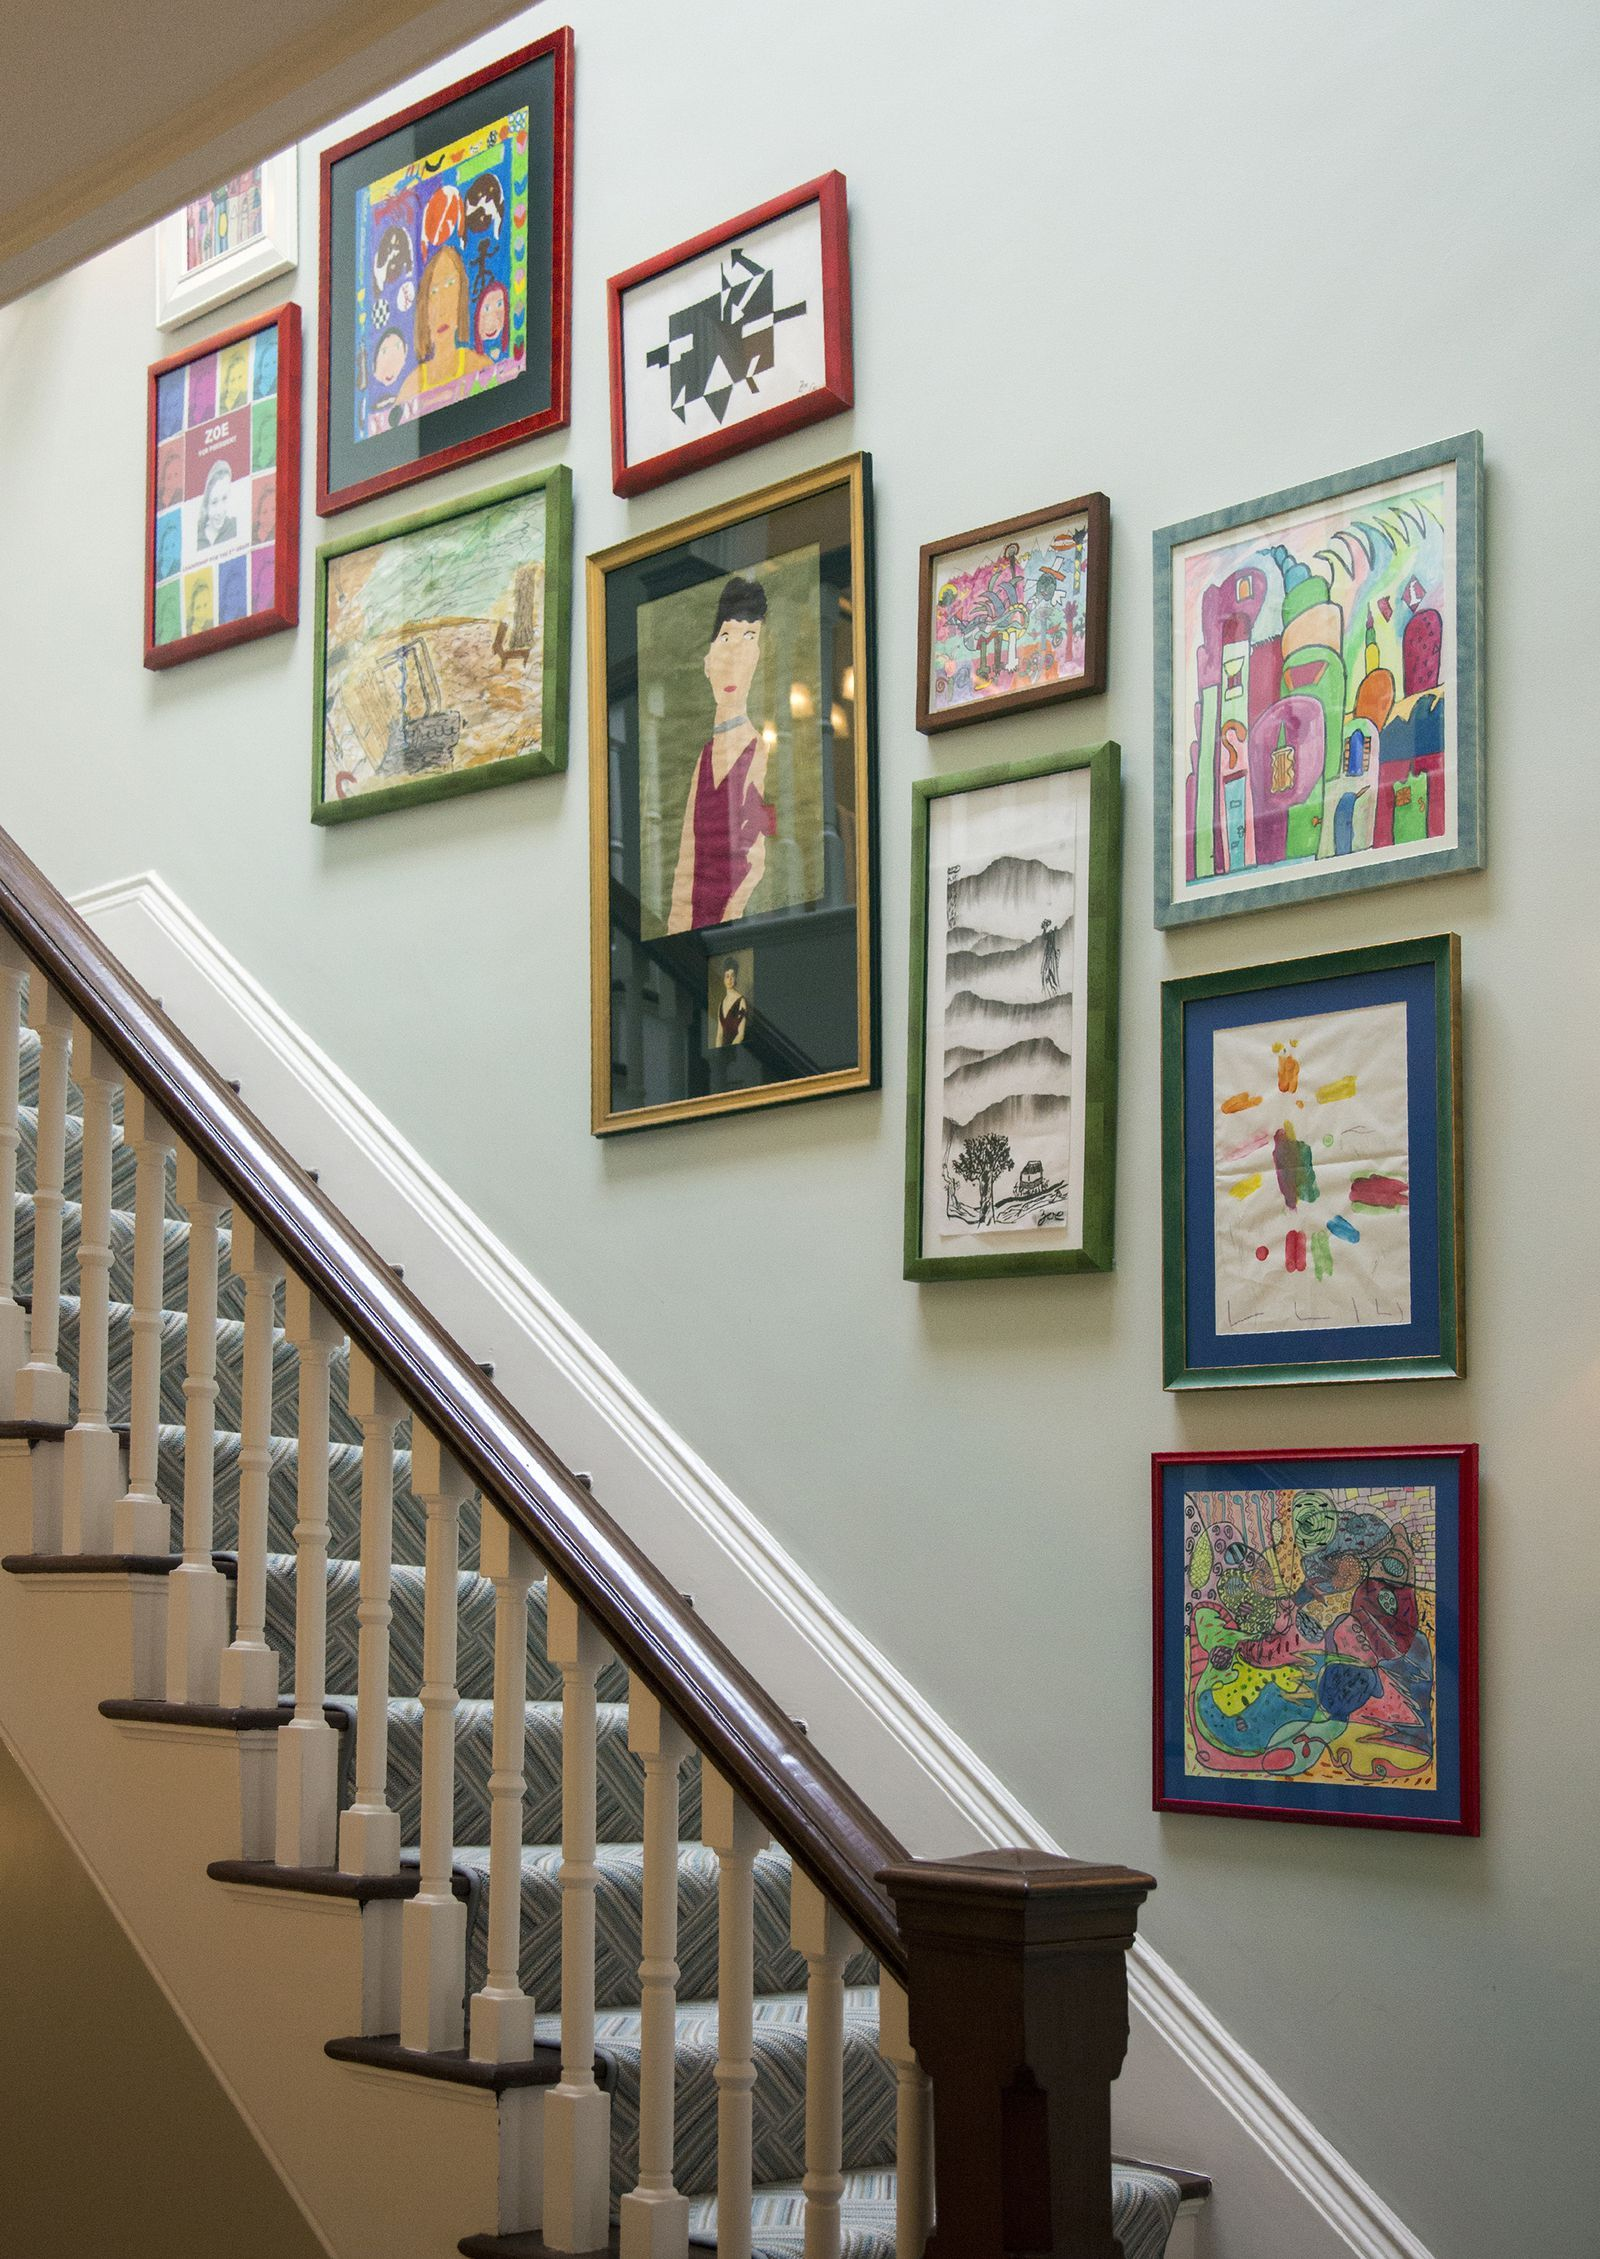 27 Stylish Staircase Decorating Ideas   Staircase wall ... on Creative Staircase Wall Decorating Ideas  id=38888